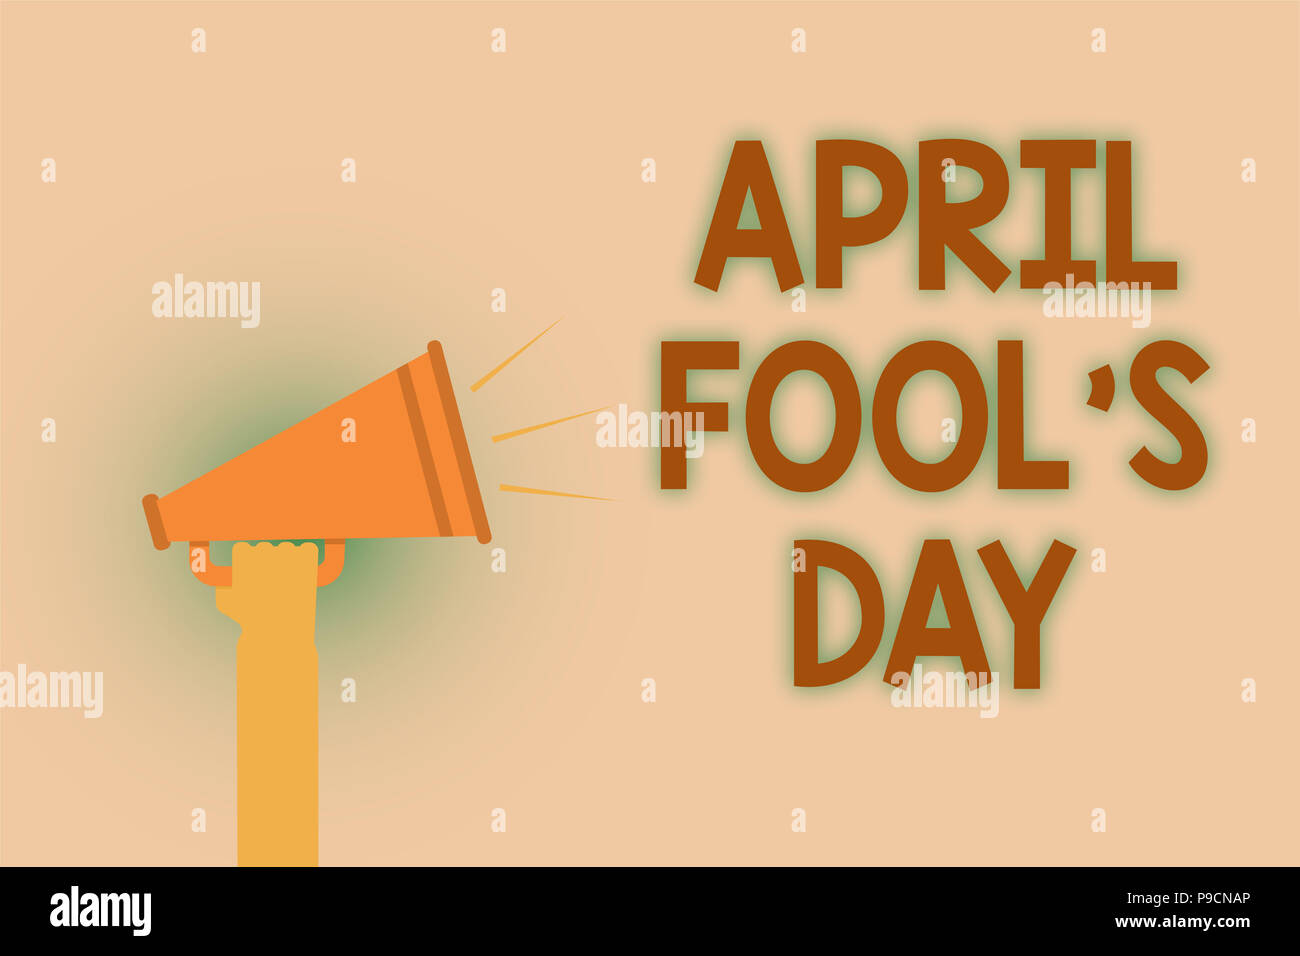 Word writing text April Fool s is Day. Business concept for Practical jokes humor pranks Celebration funny foolish Hand brown loud speaker sound publi - Stock Image